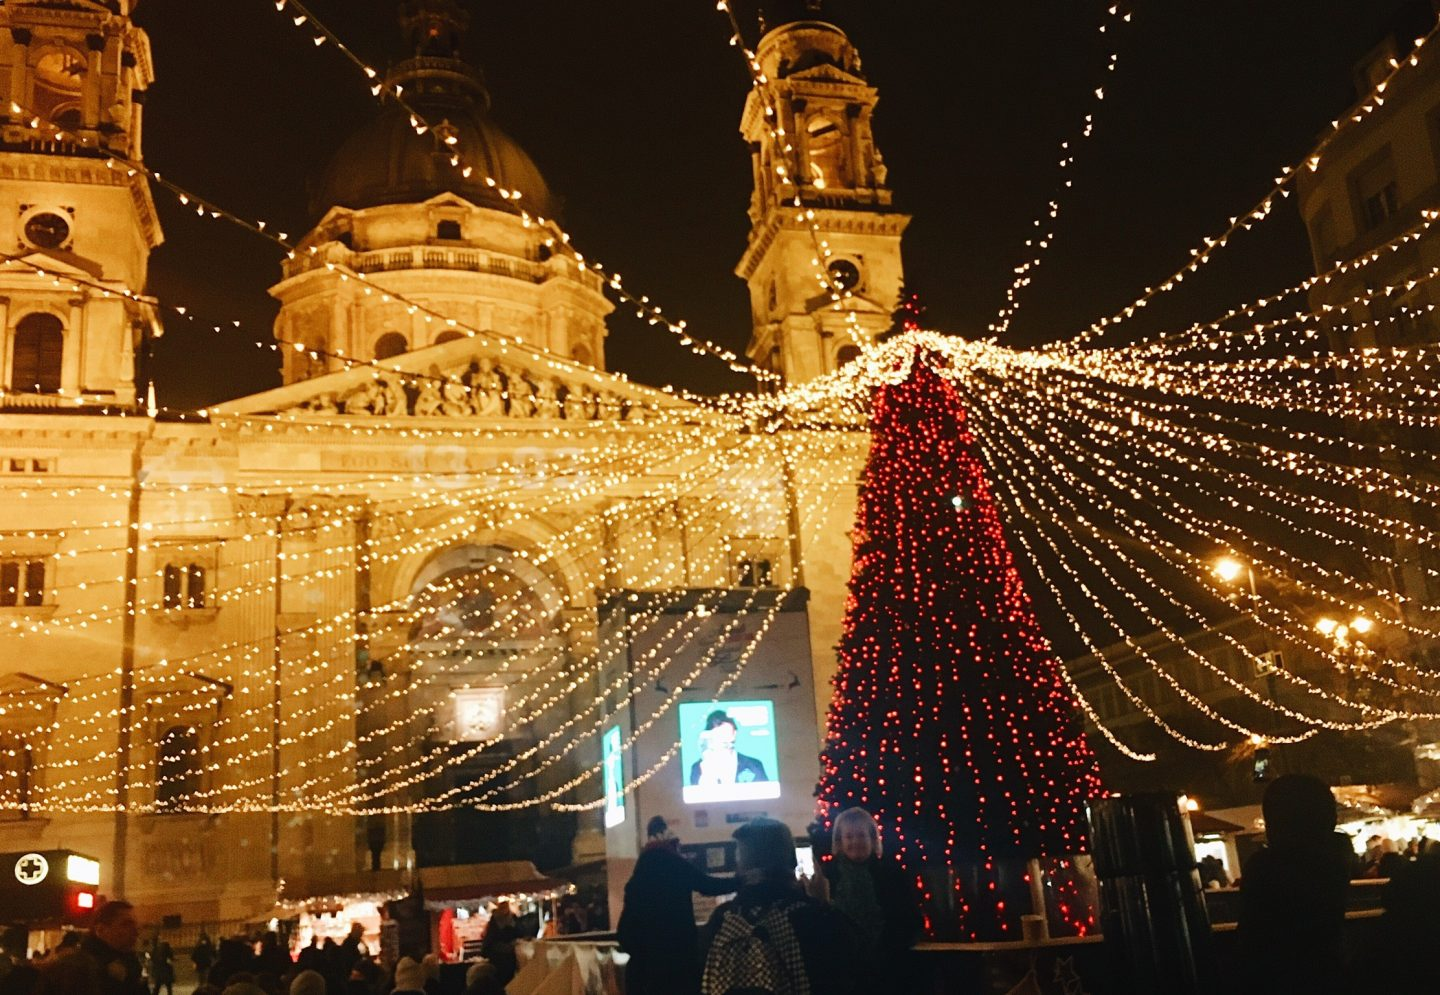 St. Stephen's Basilica all decorated for Christmas in Budapest, Hungary